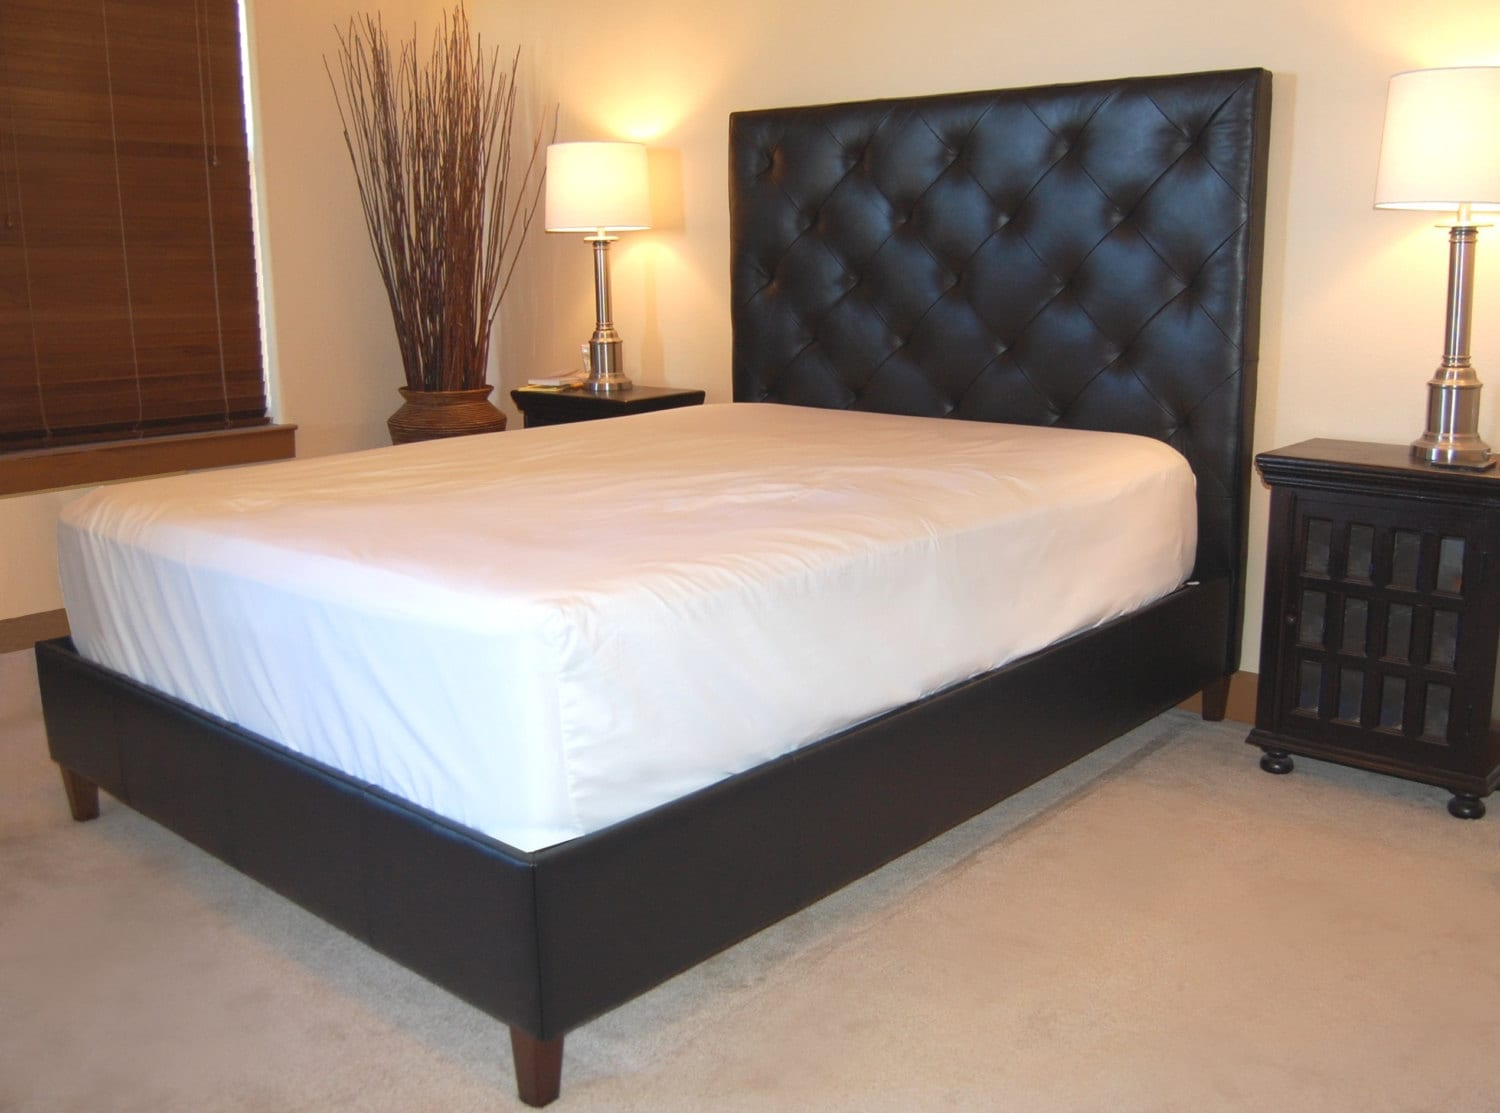 Modern Queen Size Diamond Tufted Black Genuine Leather Bed